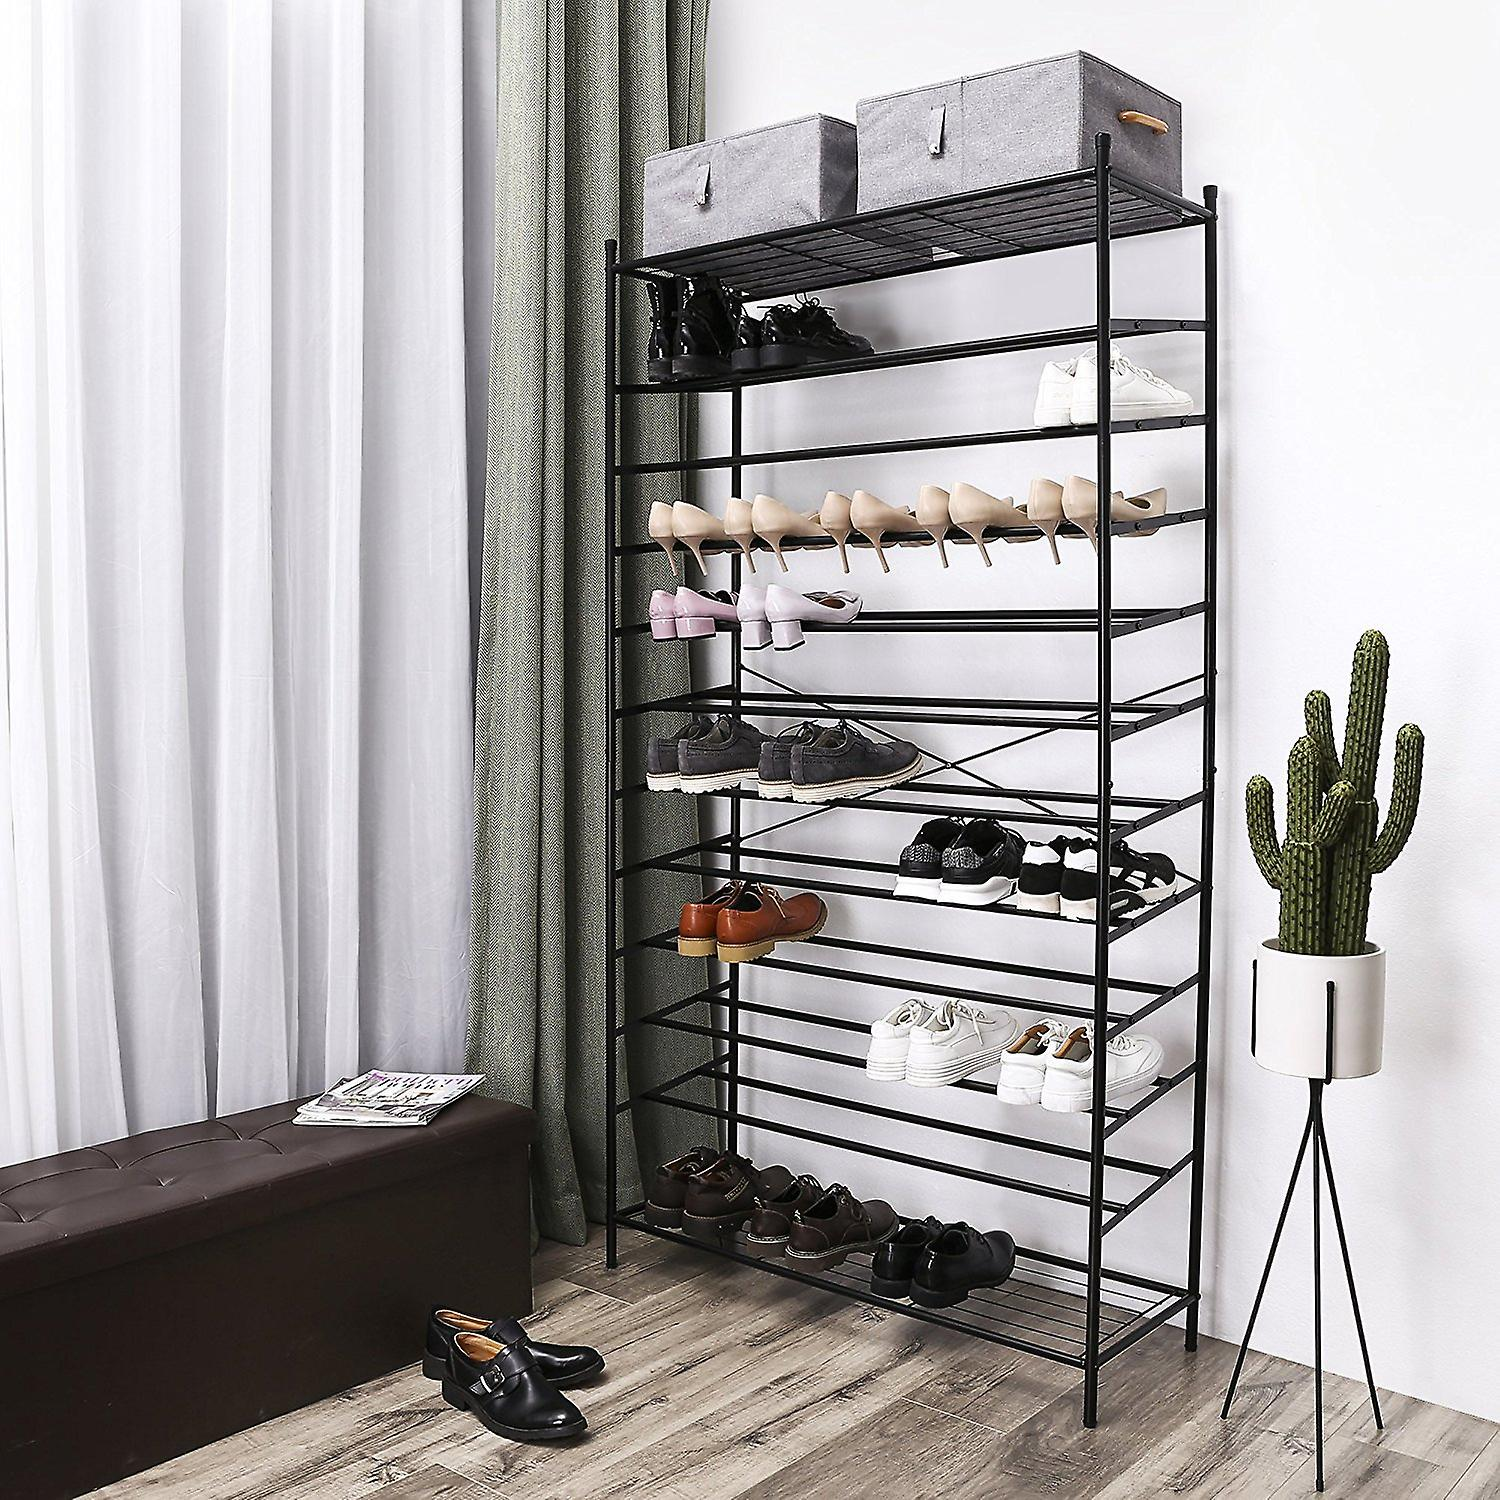 Metal shoe rack with 12 grilles